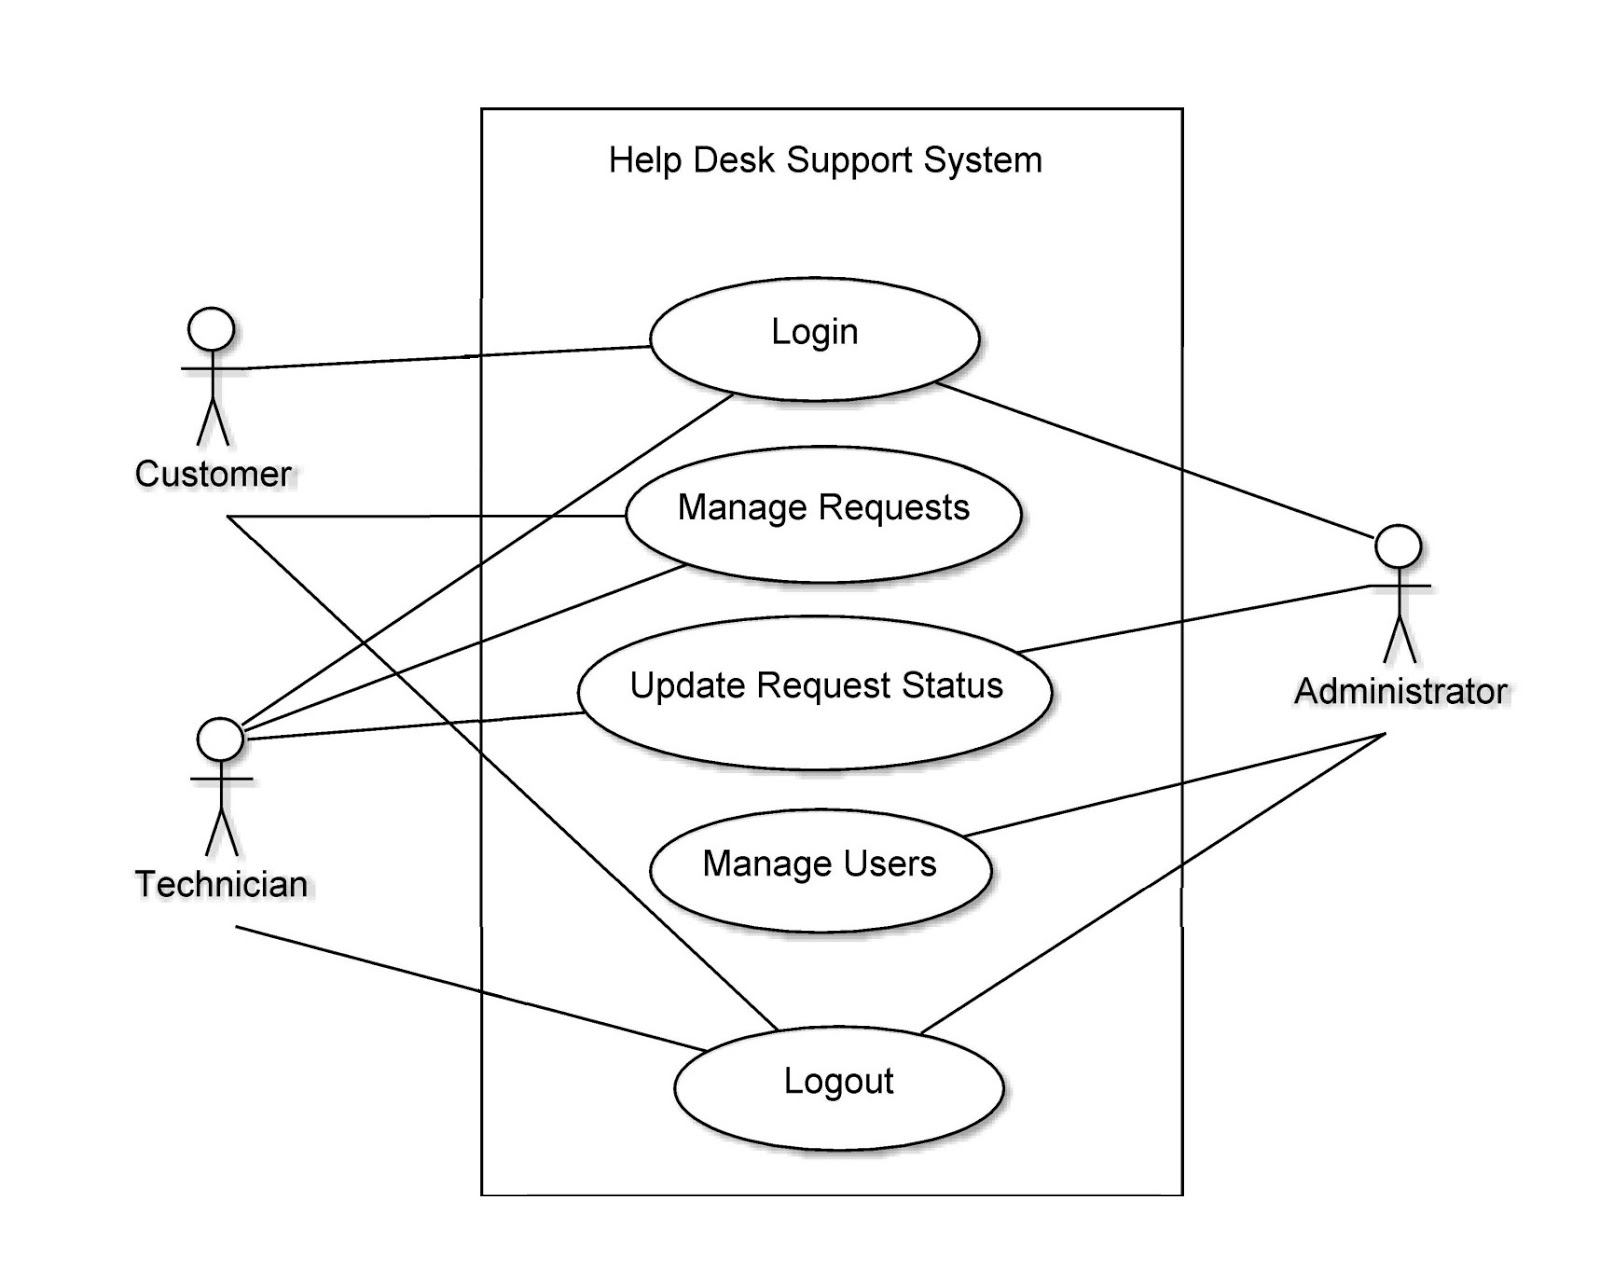 Computer science assignments help desk support system use case diagram use case diagram ccuart Choice Image